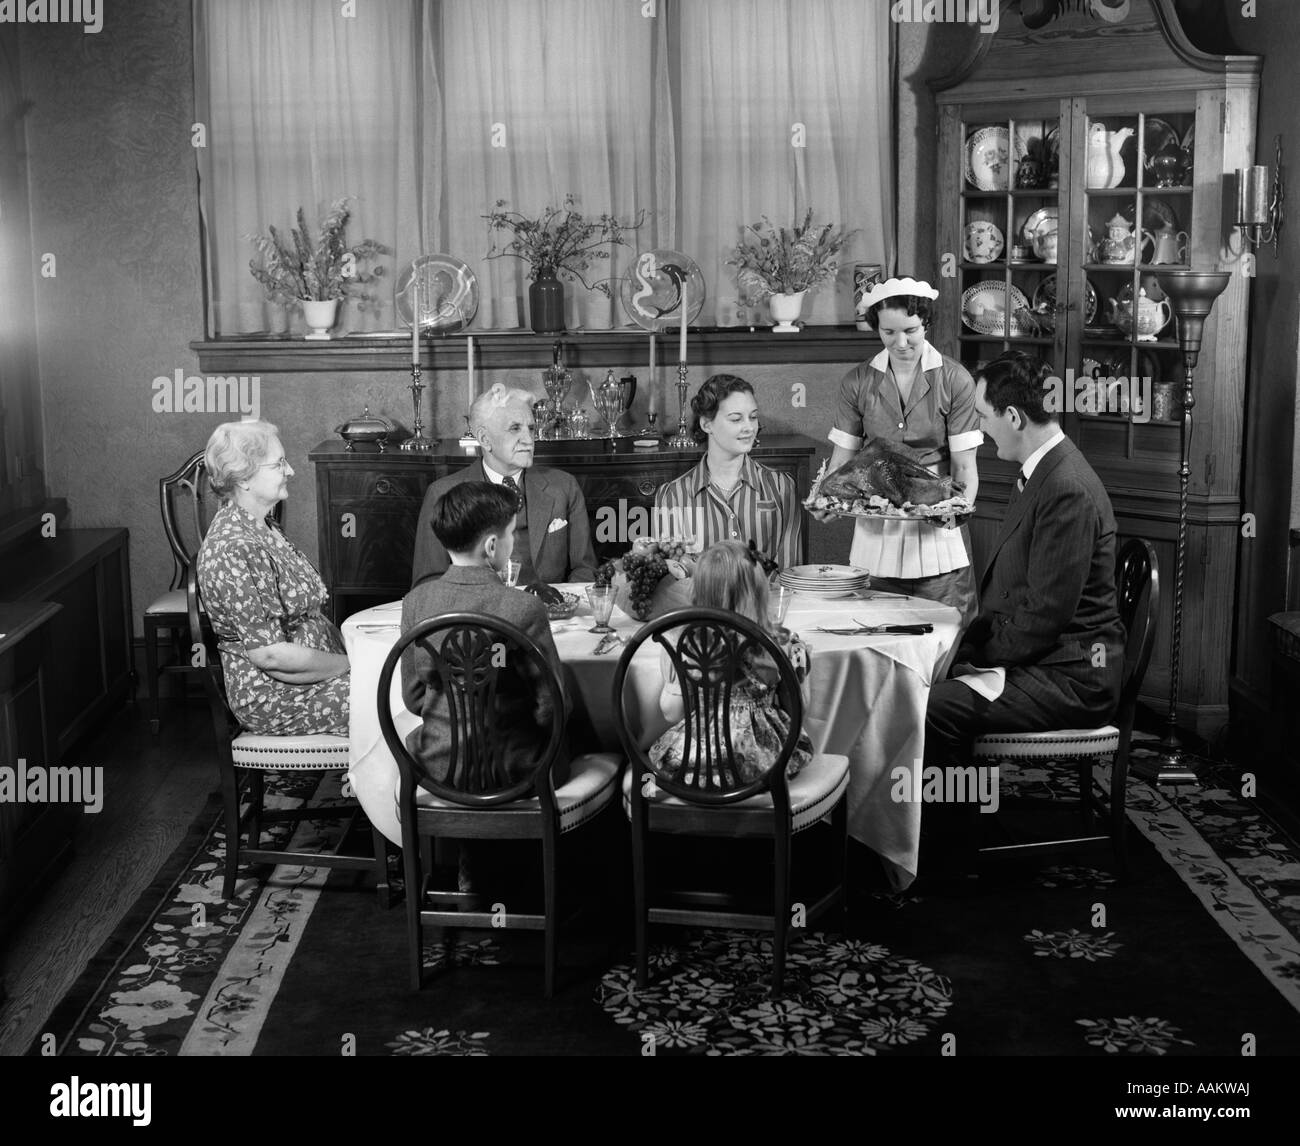 1940s TWO GENERATION FAMILY IN DINING ROOM THANKSGIVING TURKEY BEING SERVED  BY MAID